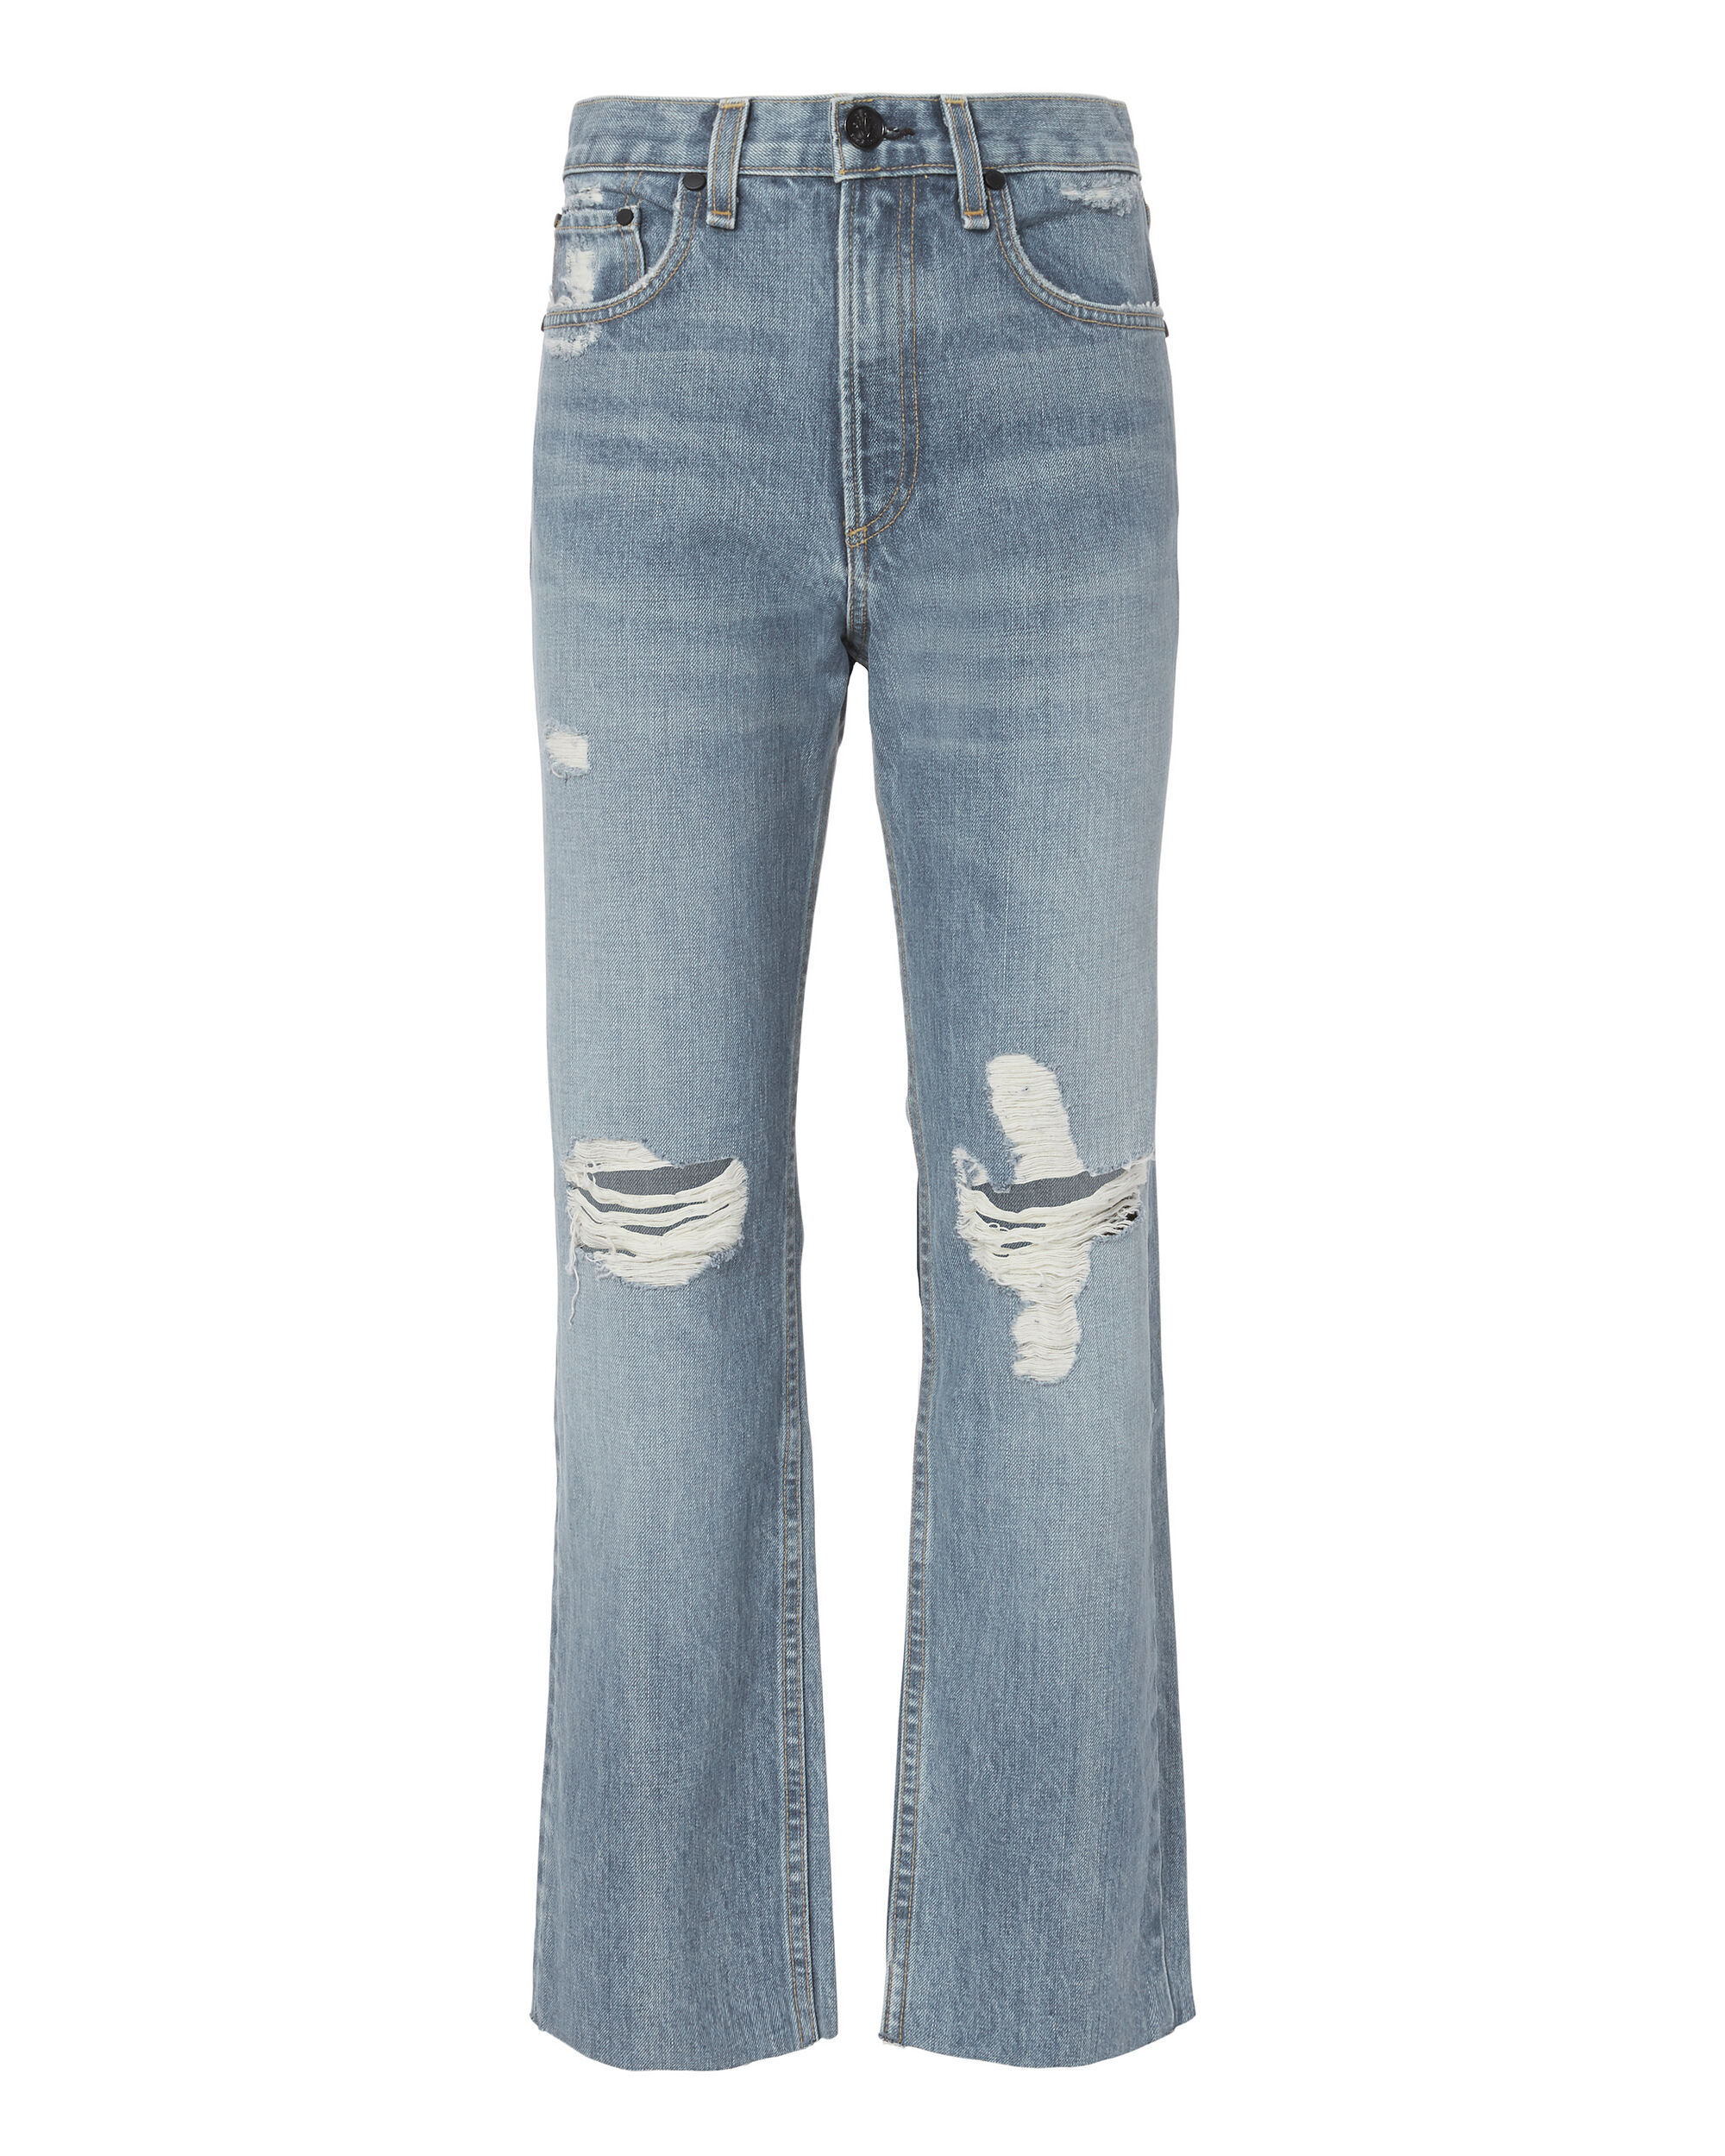 Shaker High-Rise Cropped Straight Jeans, DENIM, hi-res